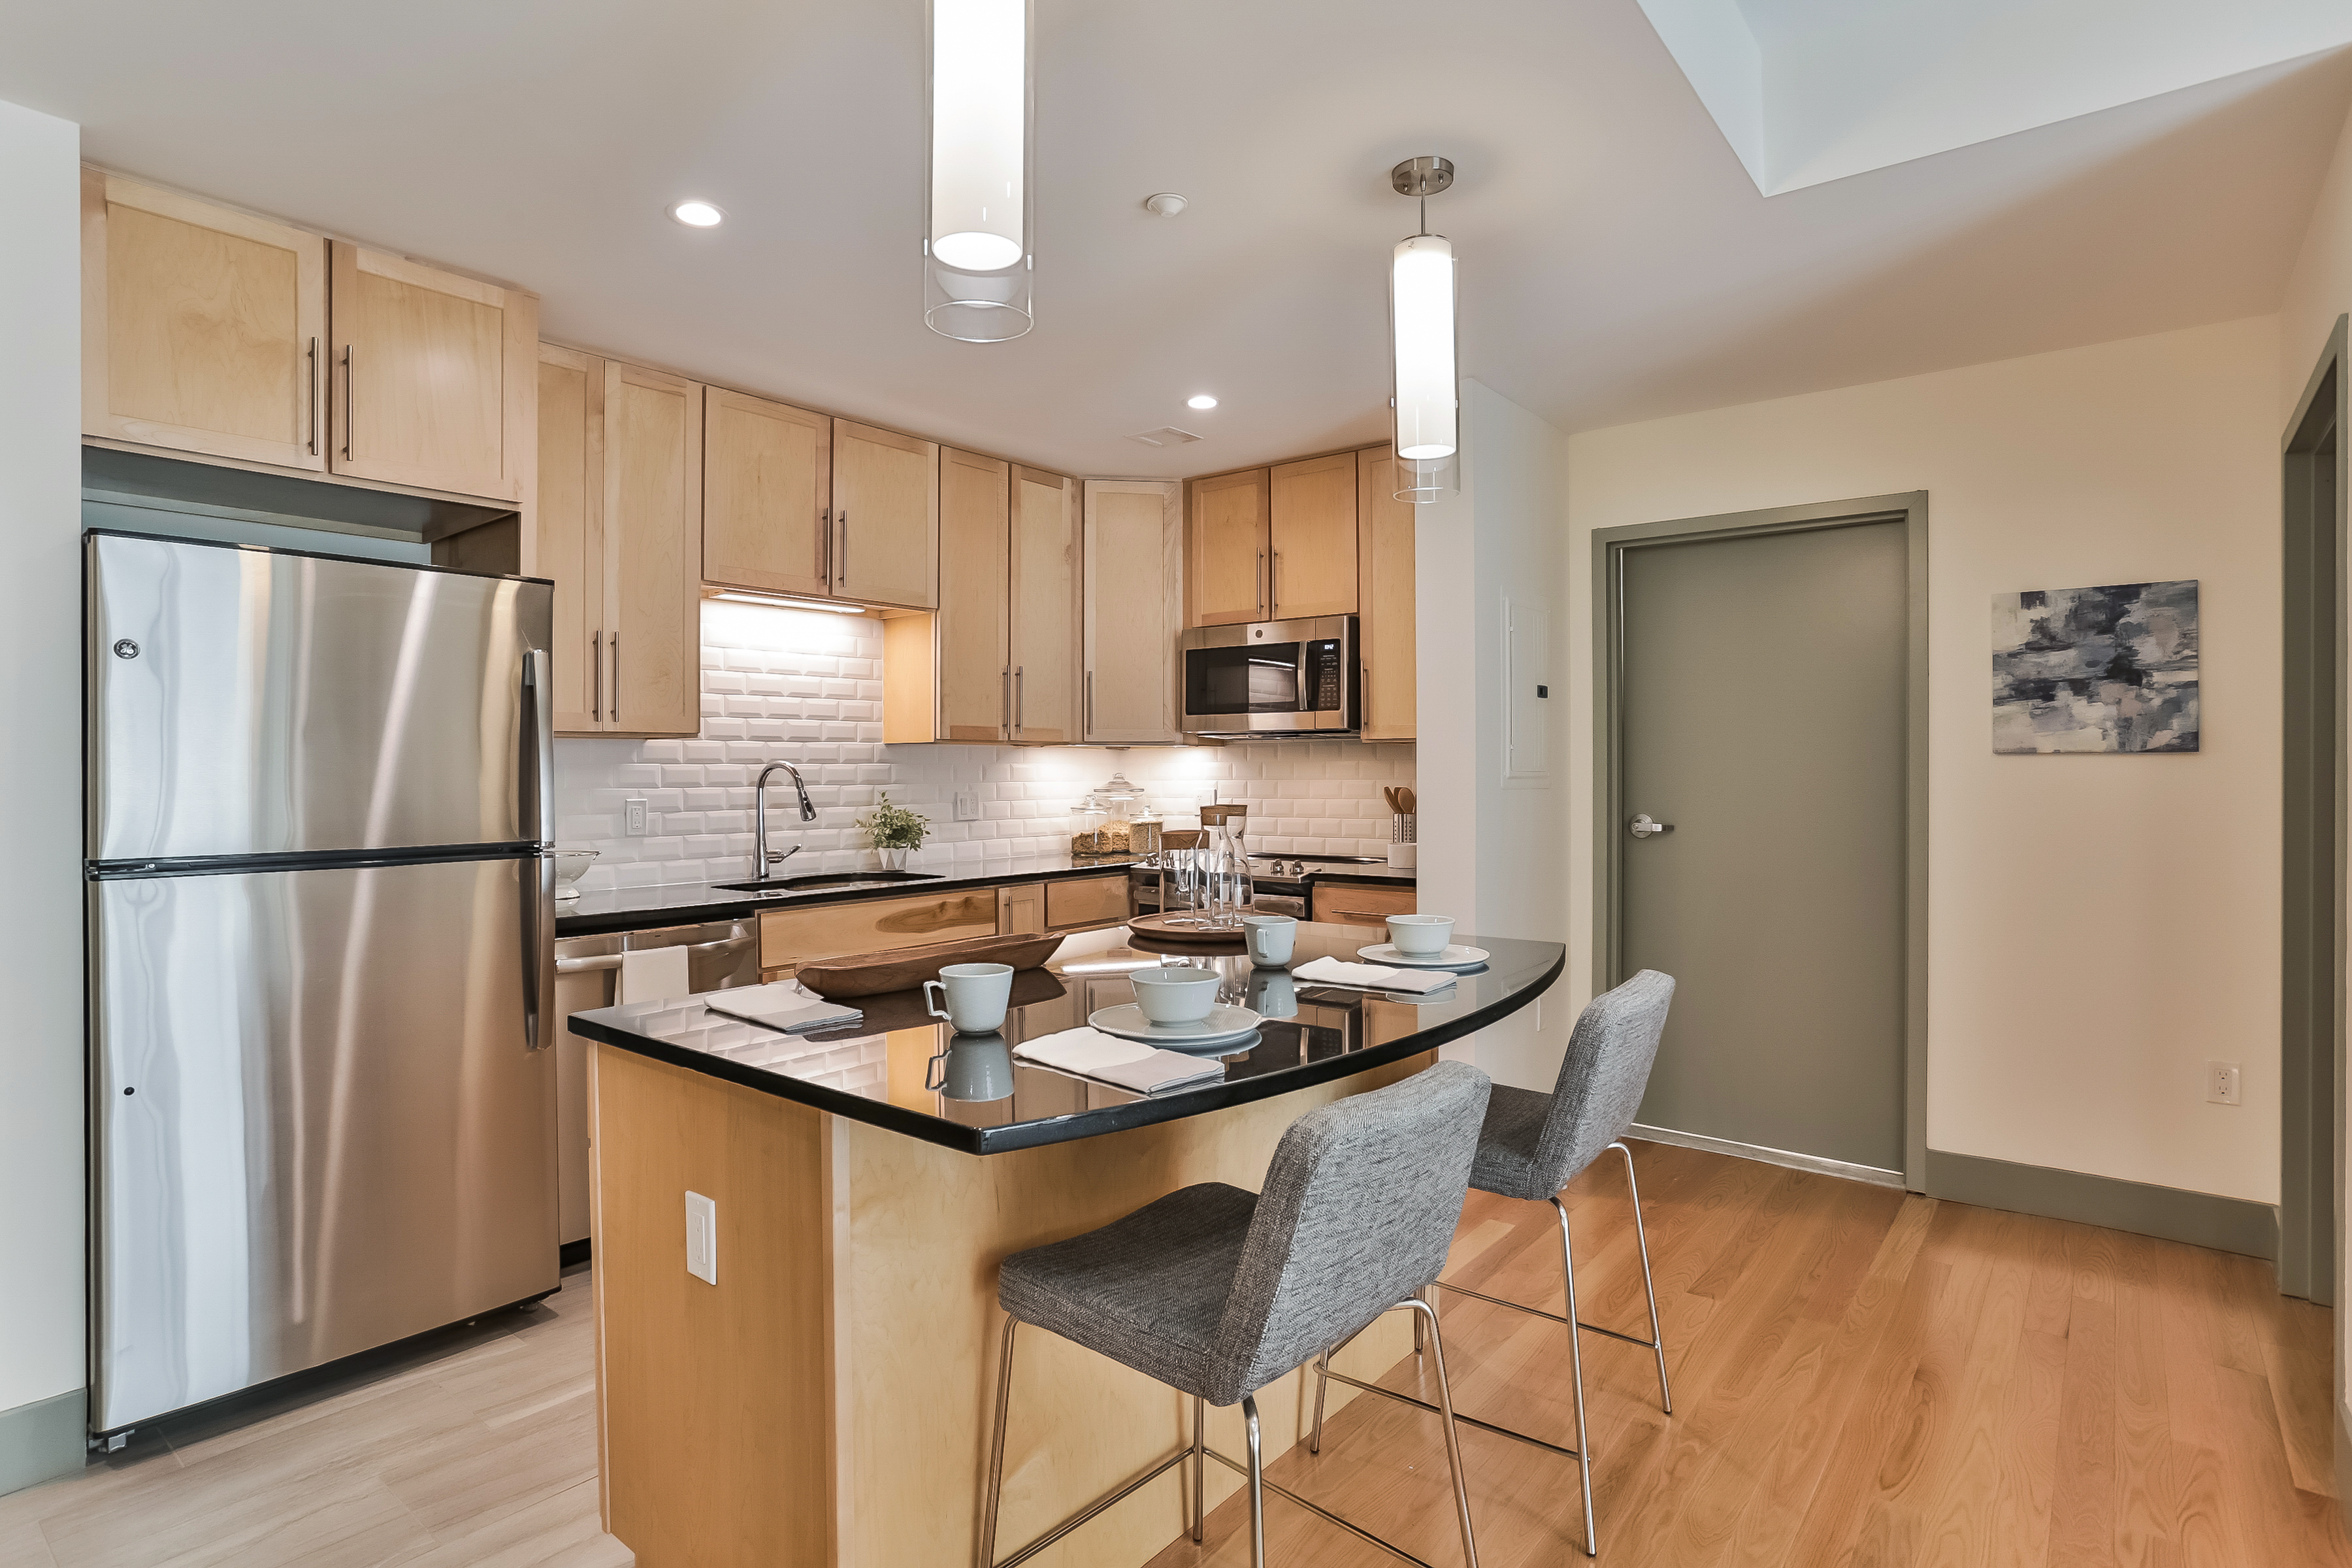 Contemporary kitchen, ready for entertaining